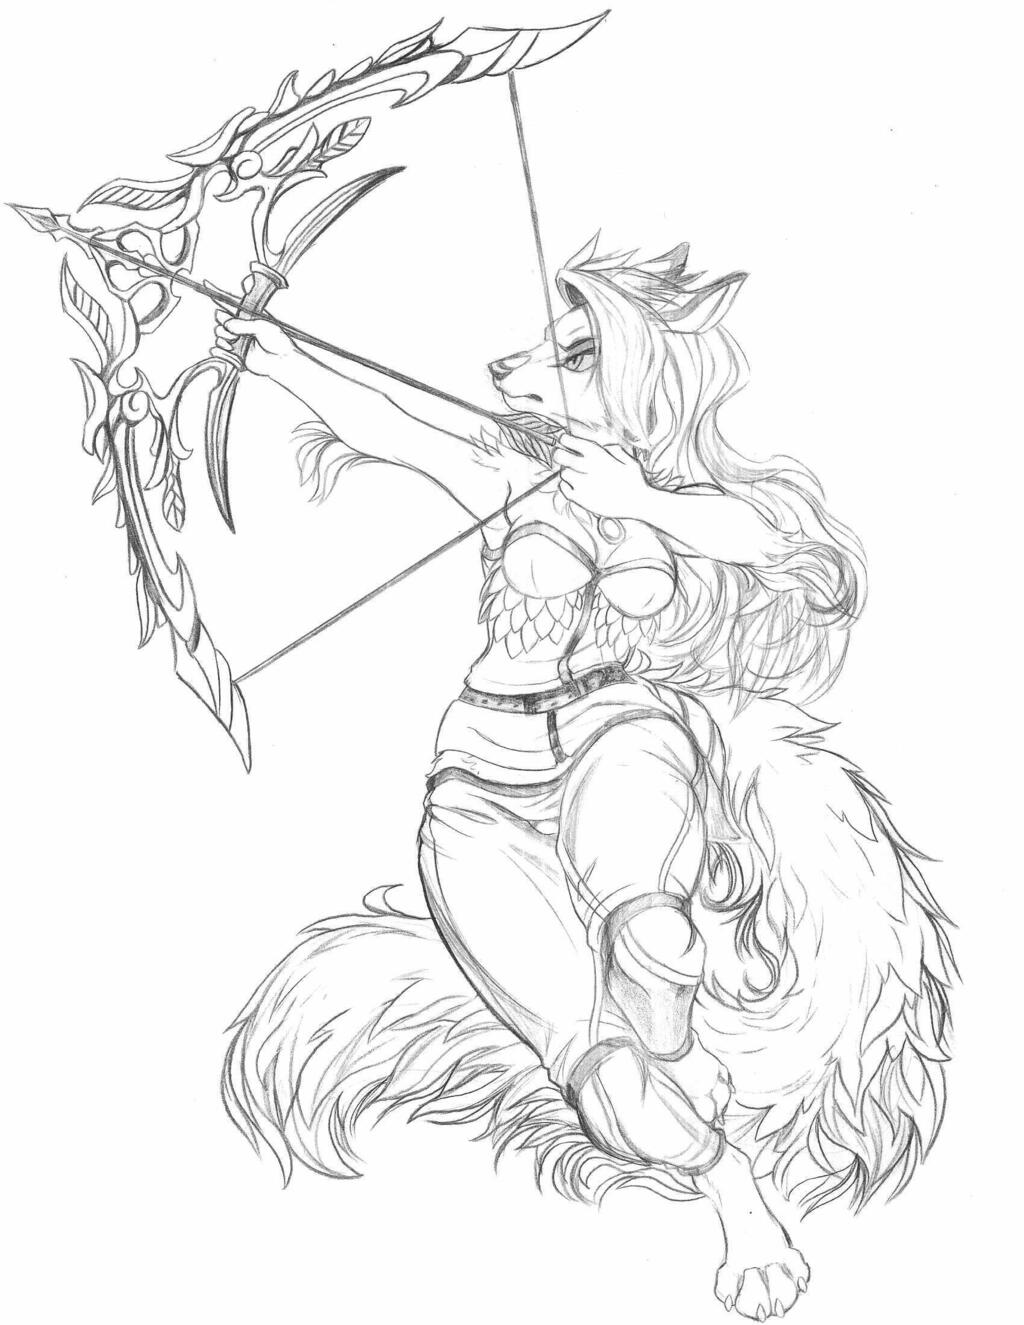 Most recent image: RAFFLE WIN - Ithilwen - Pencil